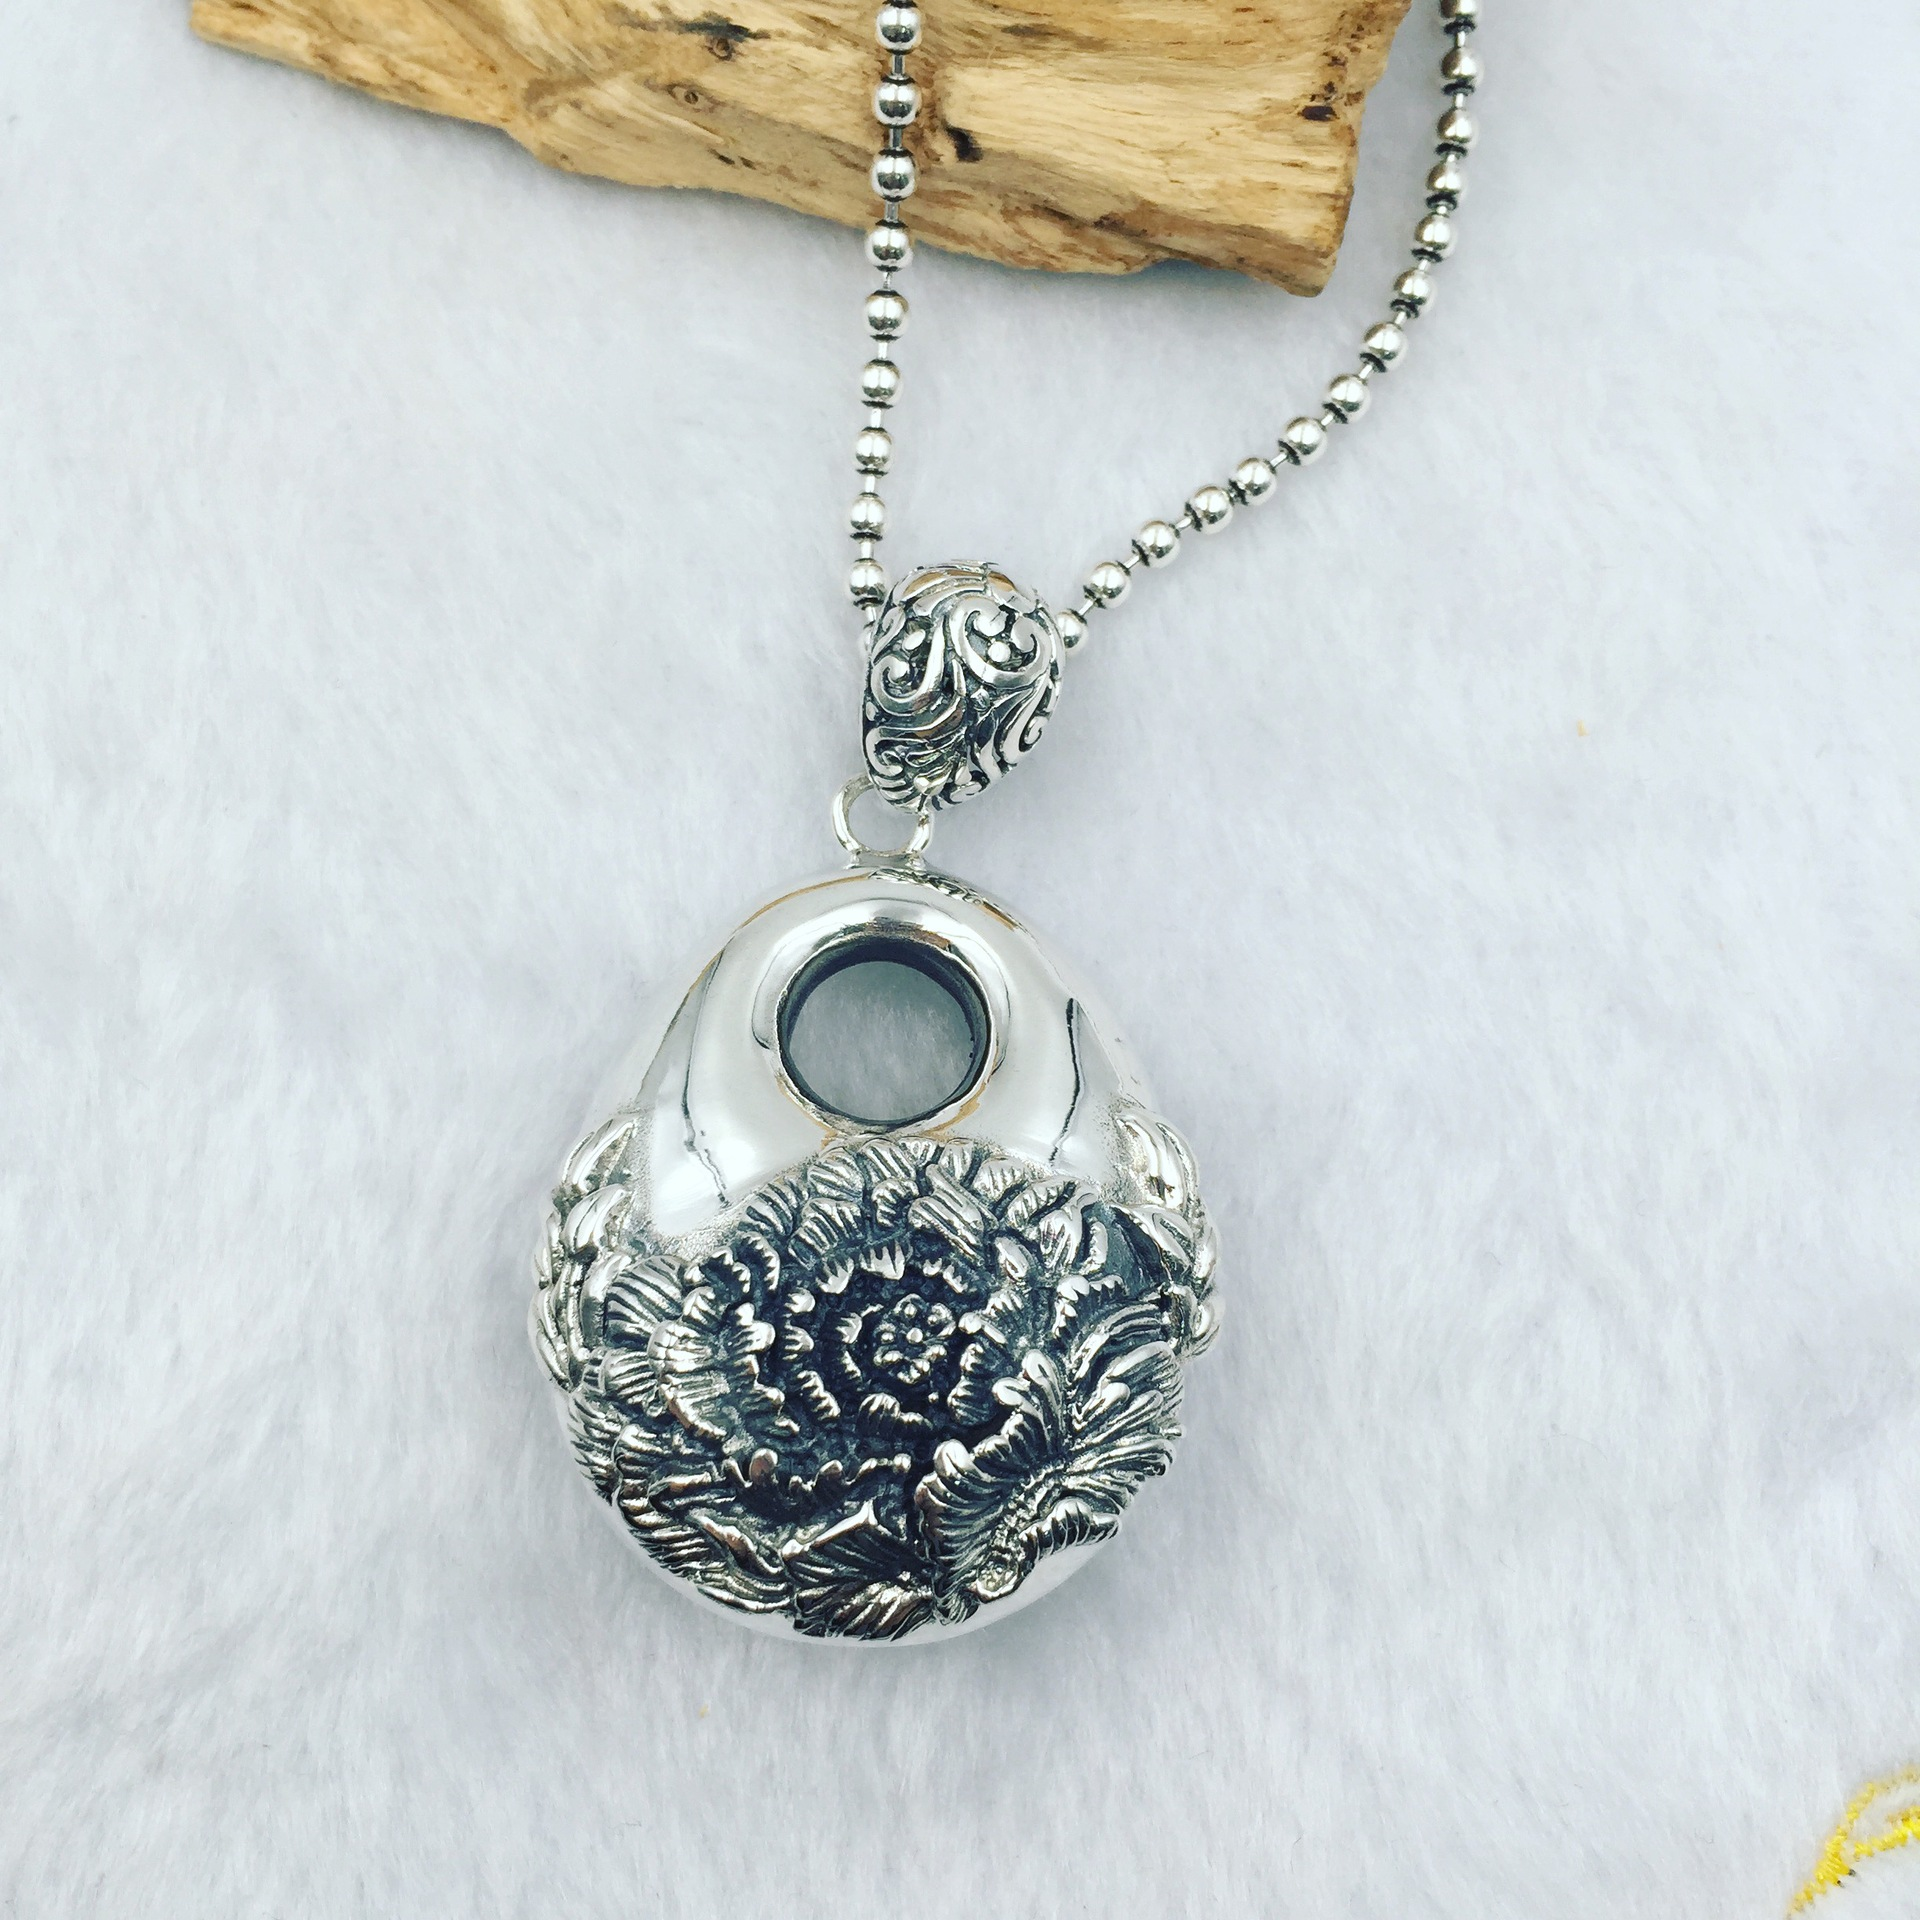 Large Pendant 925 Sterling Silver Peony Beauty Silver PendantLarge Pendant 925 Sterling Silver Peony Beauty Silver Pendant